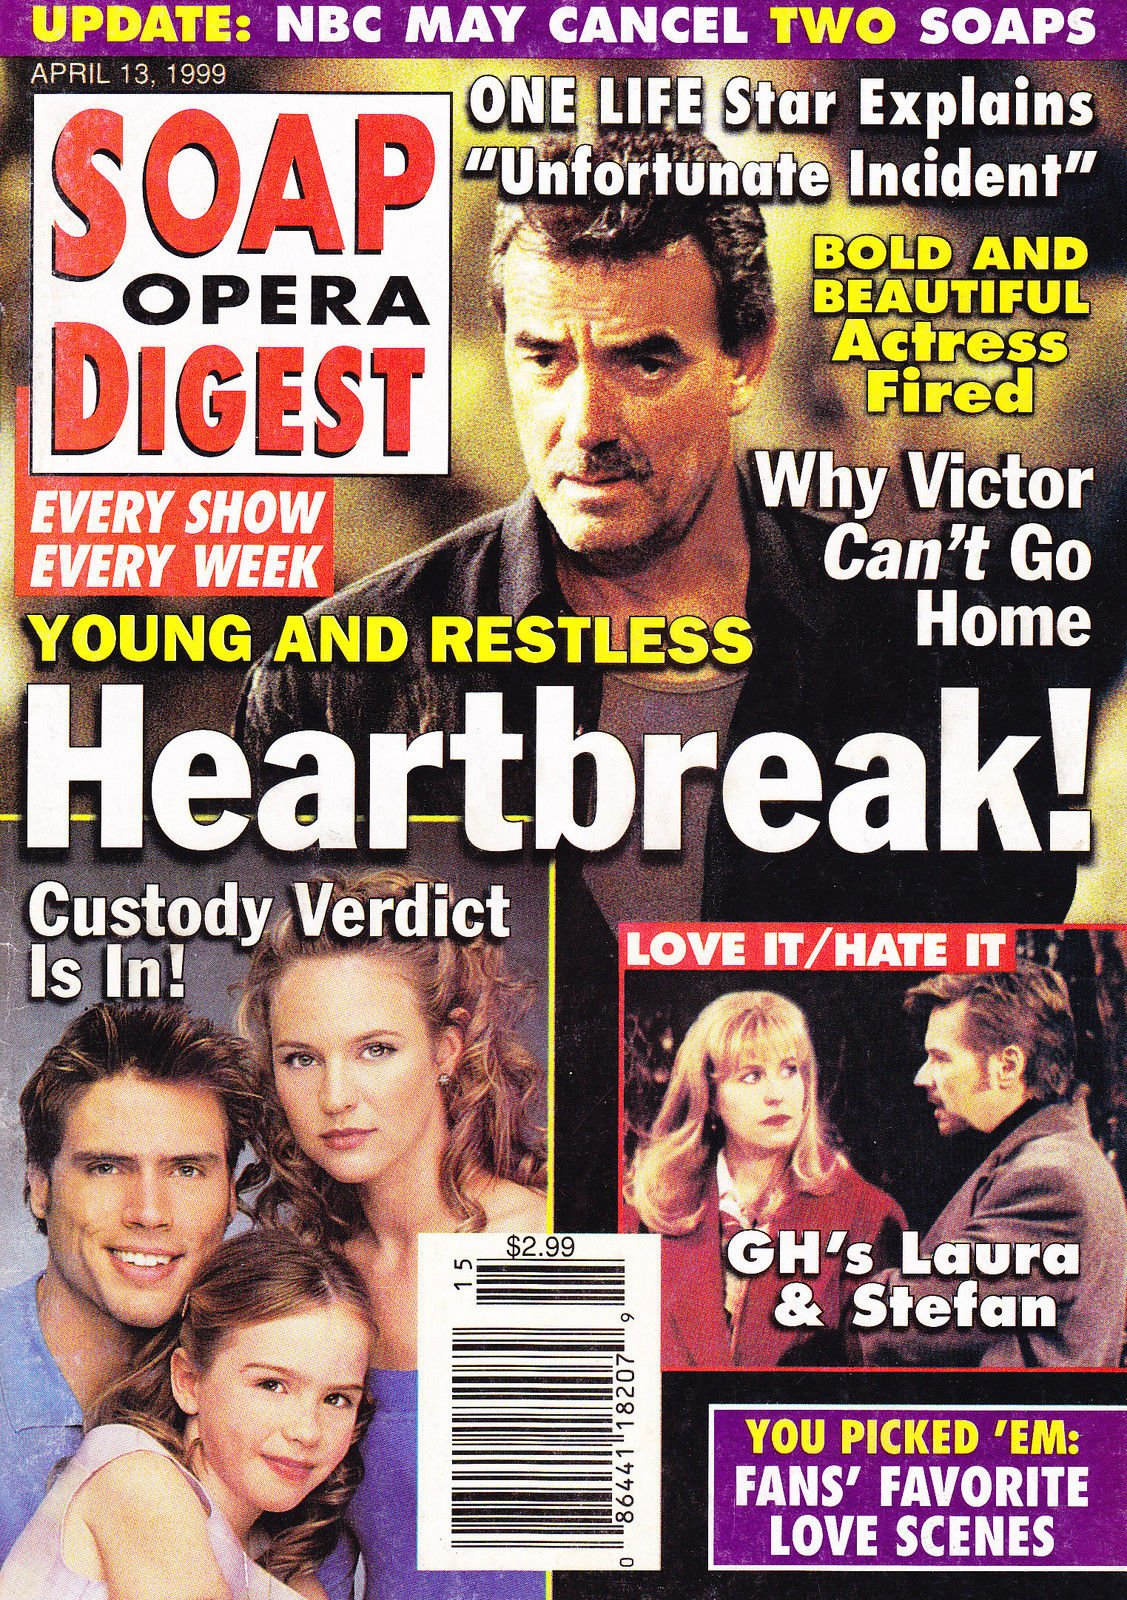 Eric Braeden Young The Restless Genie Francis Stephen Nichols General Hospital Soaps Most Obsessed Characters April 13 1999 Soap Opera Digest Magazine Lynn Leahey Amazon Com Books